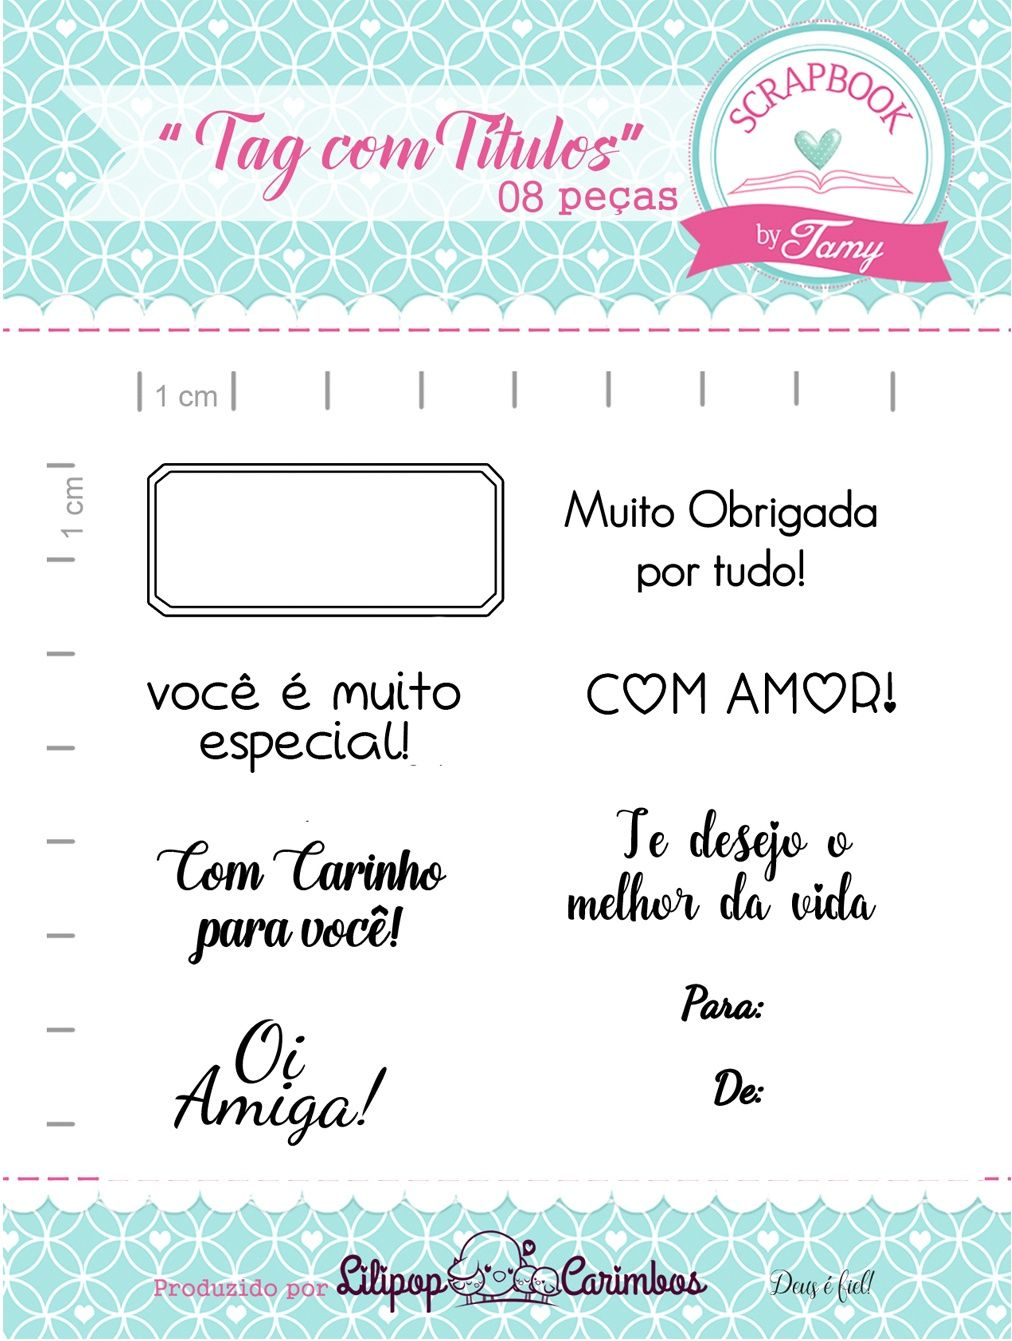 Kit de Carimbos - Tag com Títulos - Scrapbook by Tamy